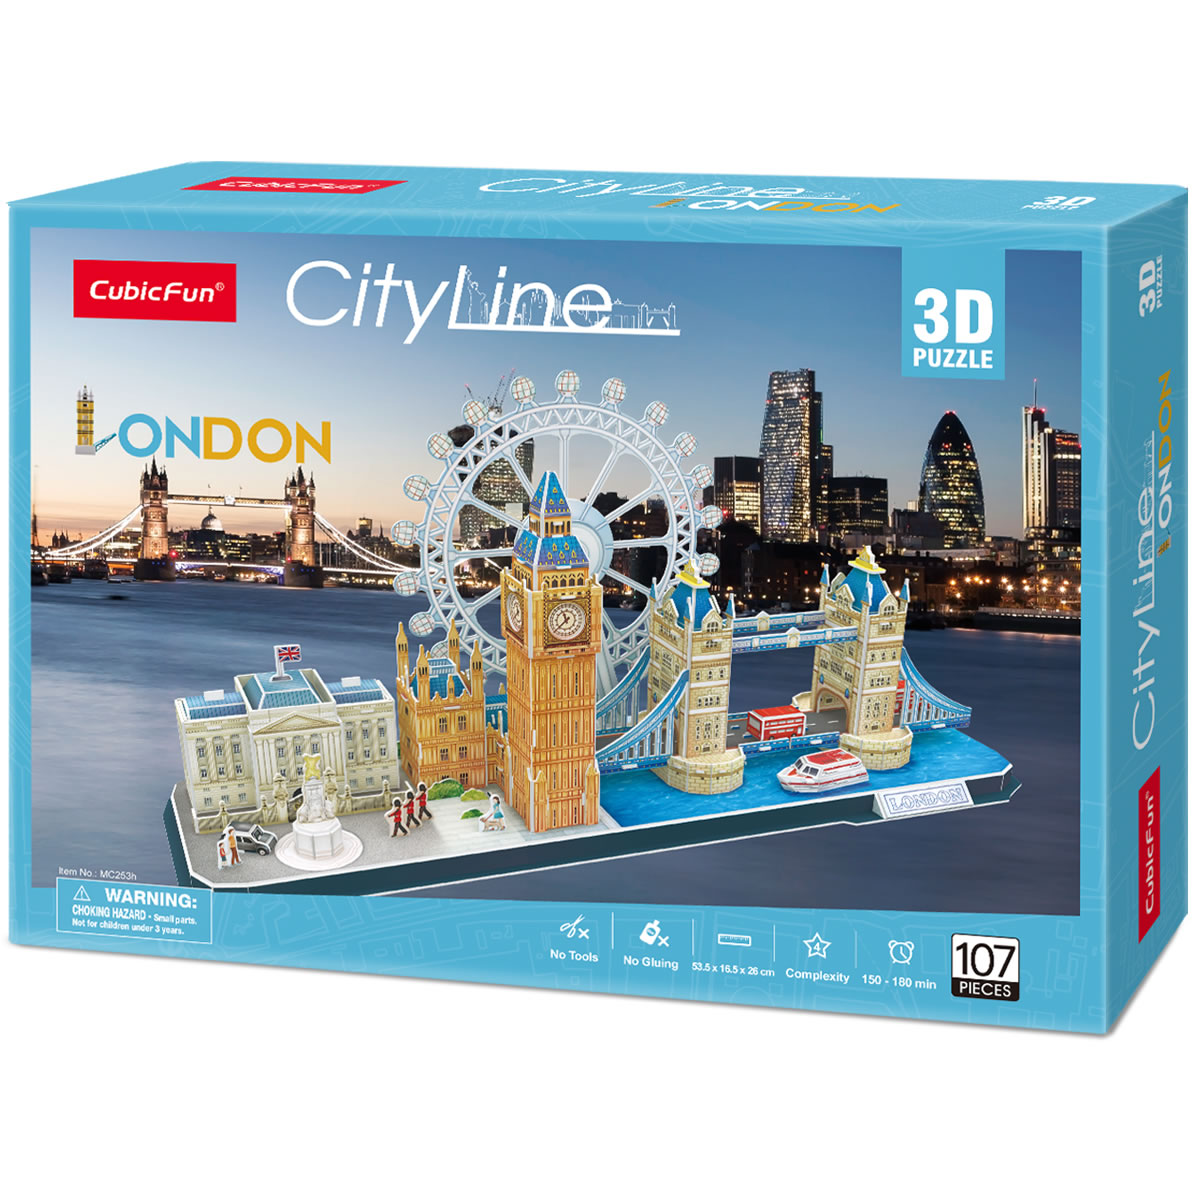 CubicFun 3D puzzle CITY LINE LONDON